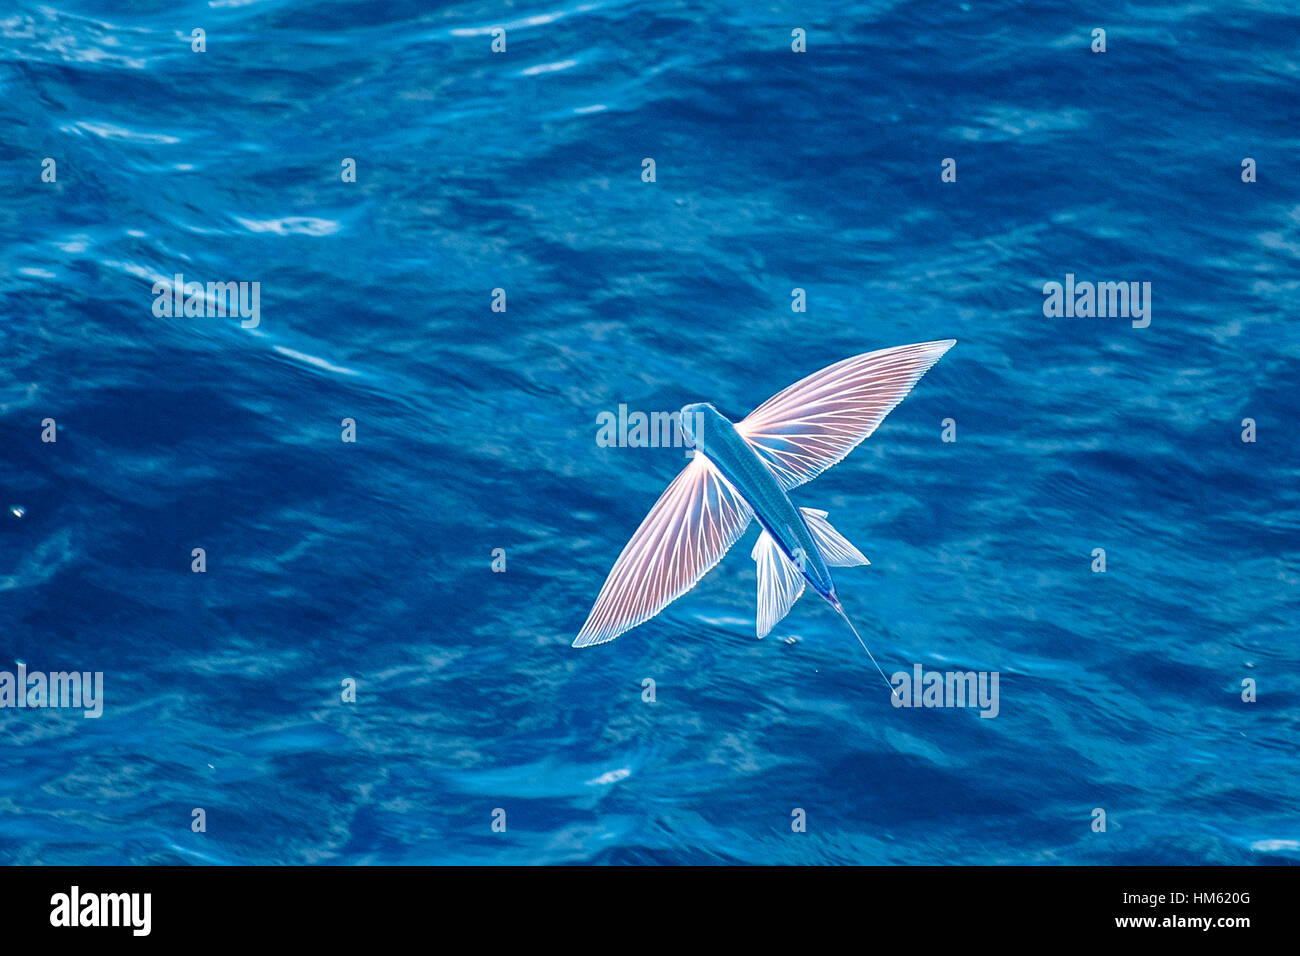 Flying fish species in mid air scientific name unknown for Flying fish images